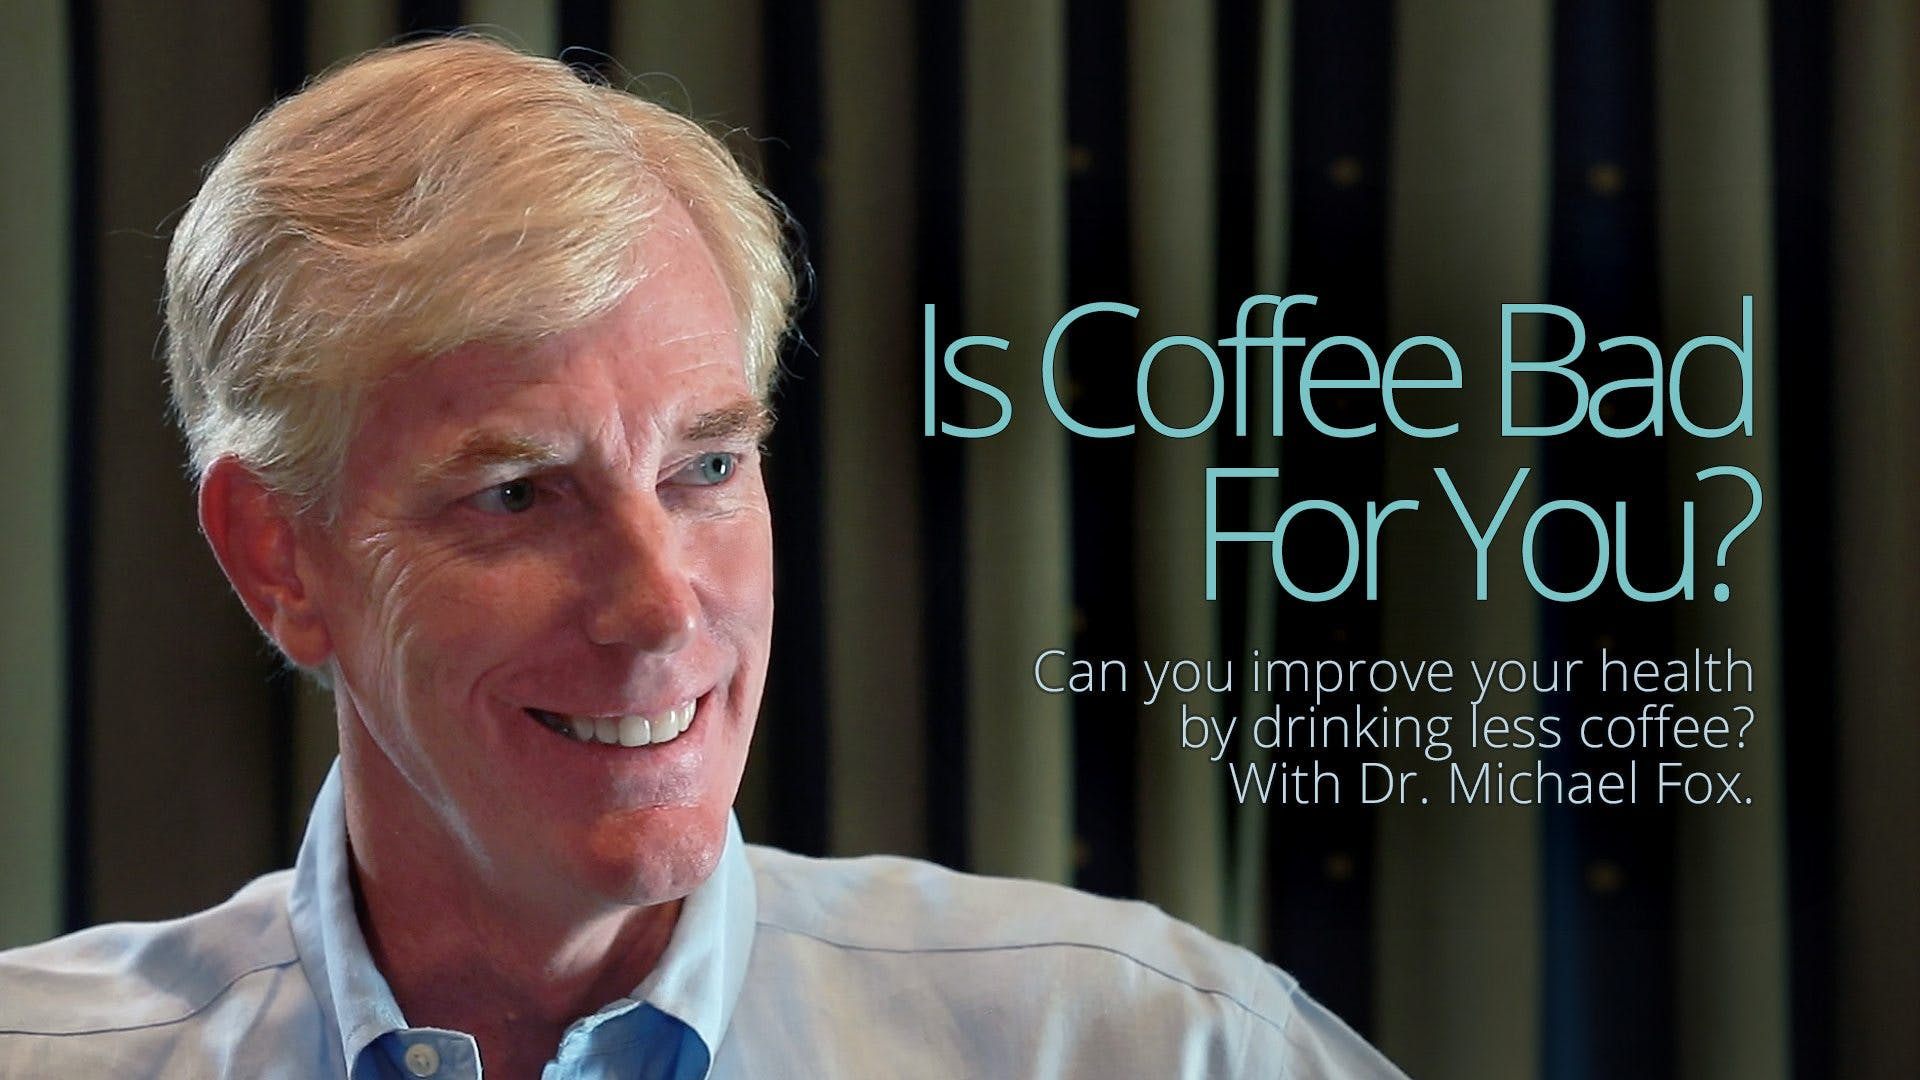 Is Coffee Bad for You? – Dr. Michael Fox